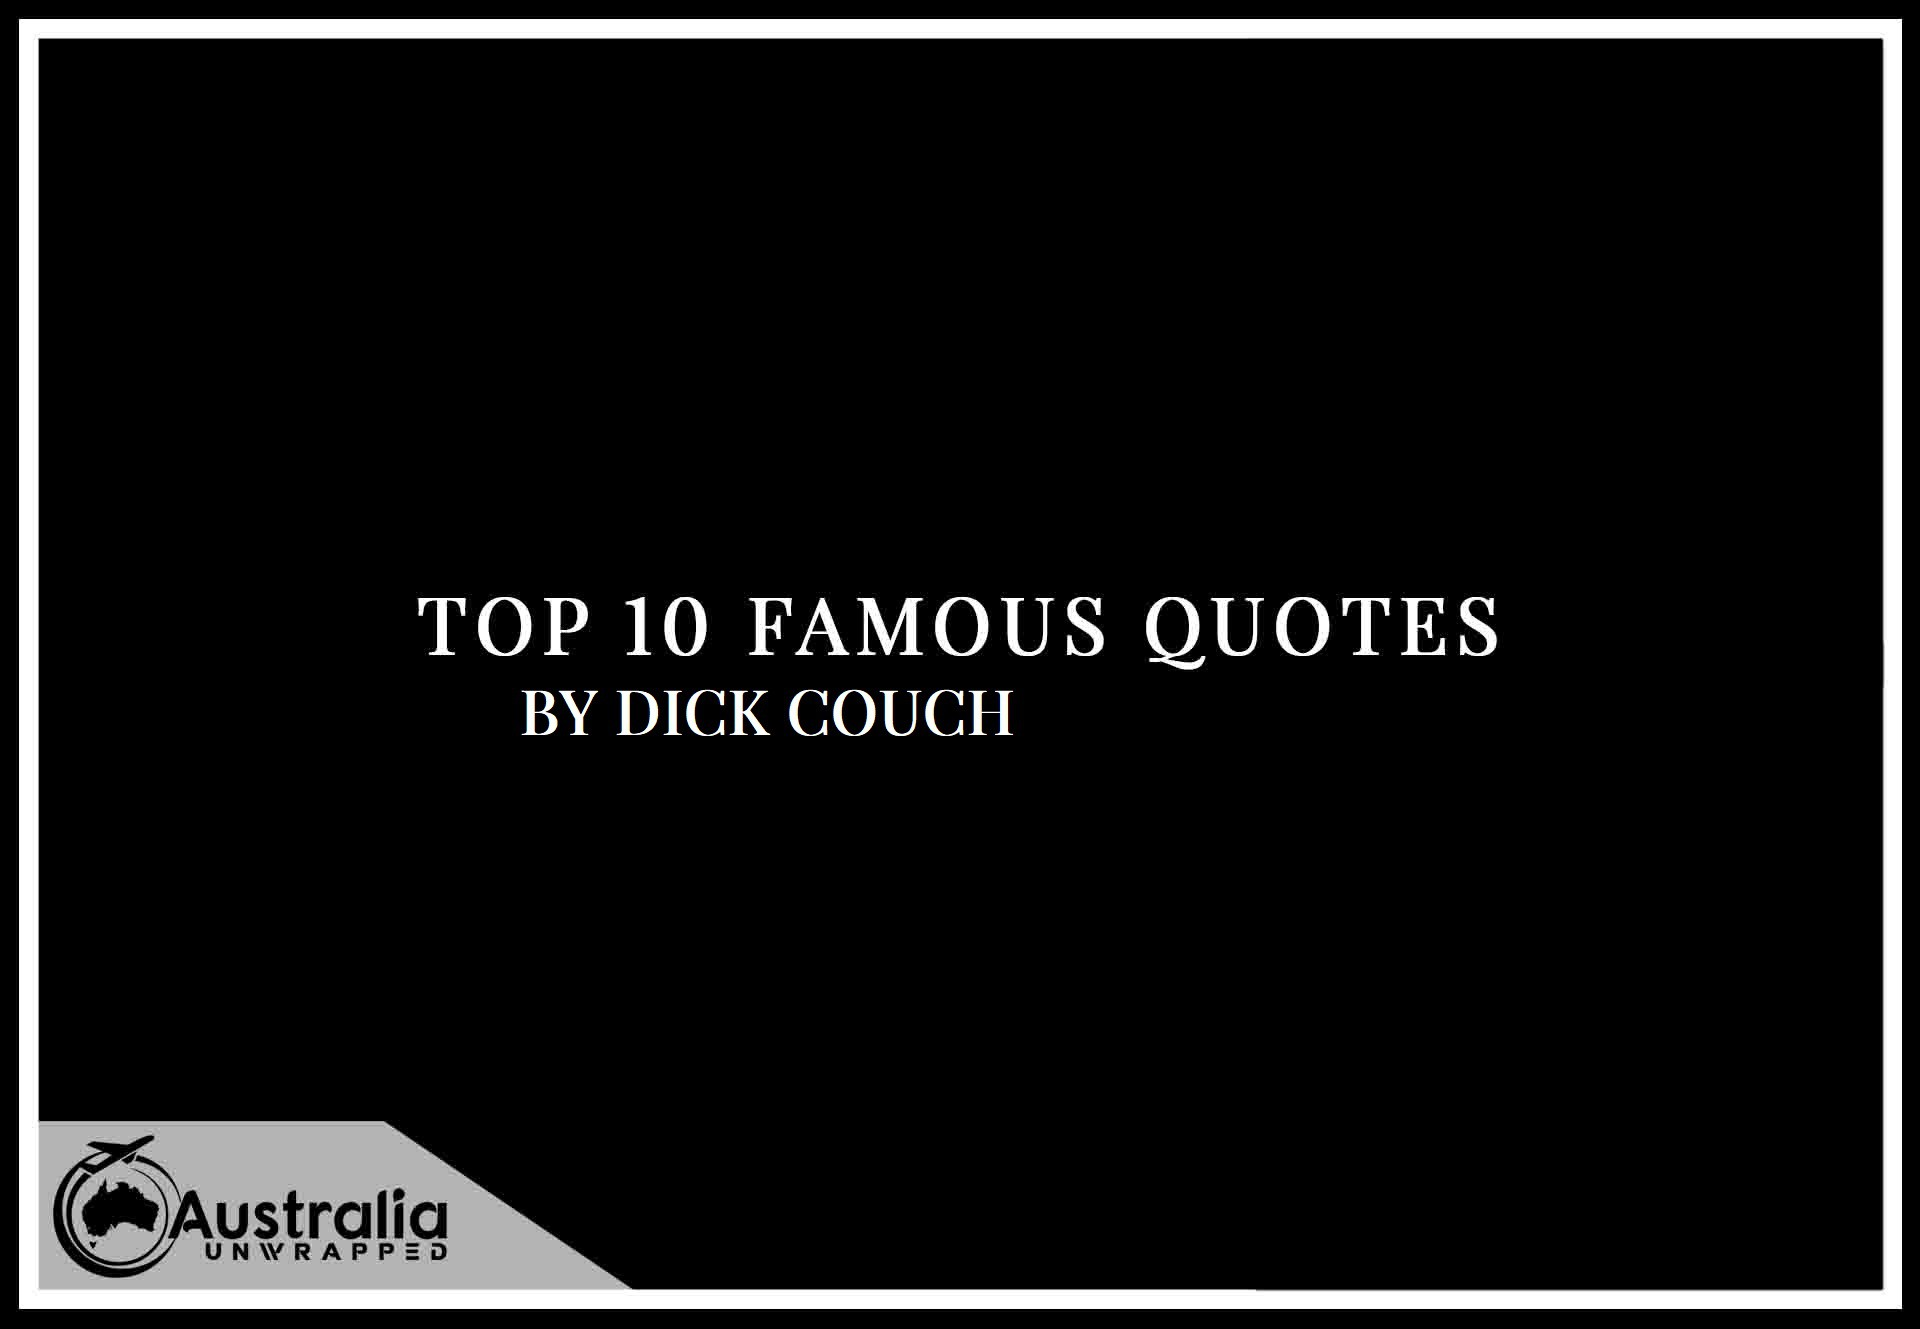 Top 10 Famous Quotes by Author Dick Couch